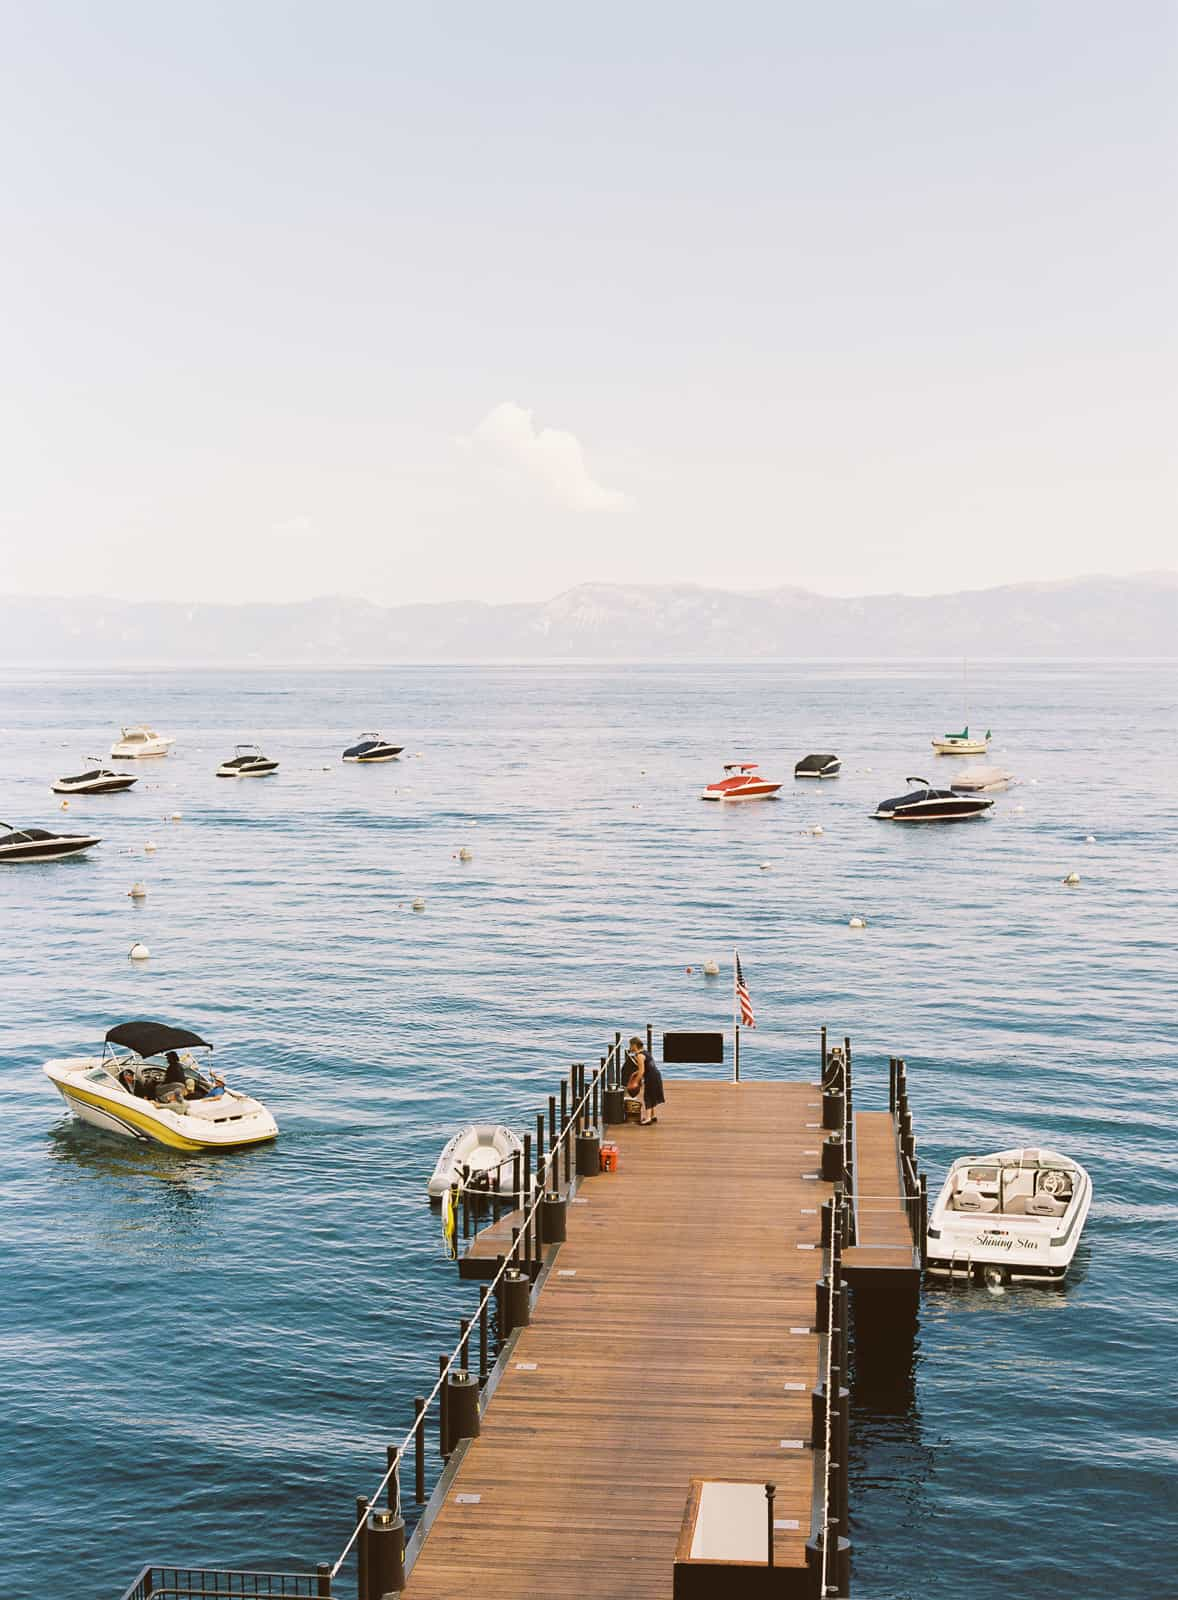 Dock and boats on Lake Tahoe